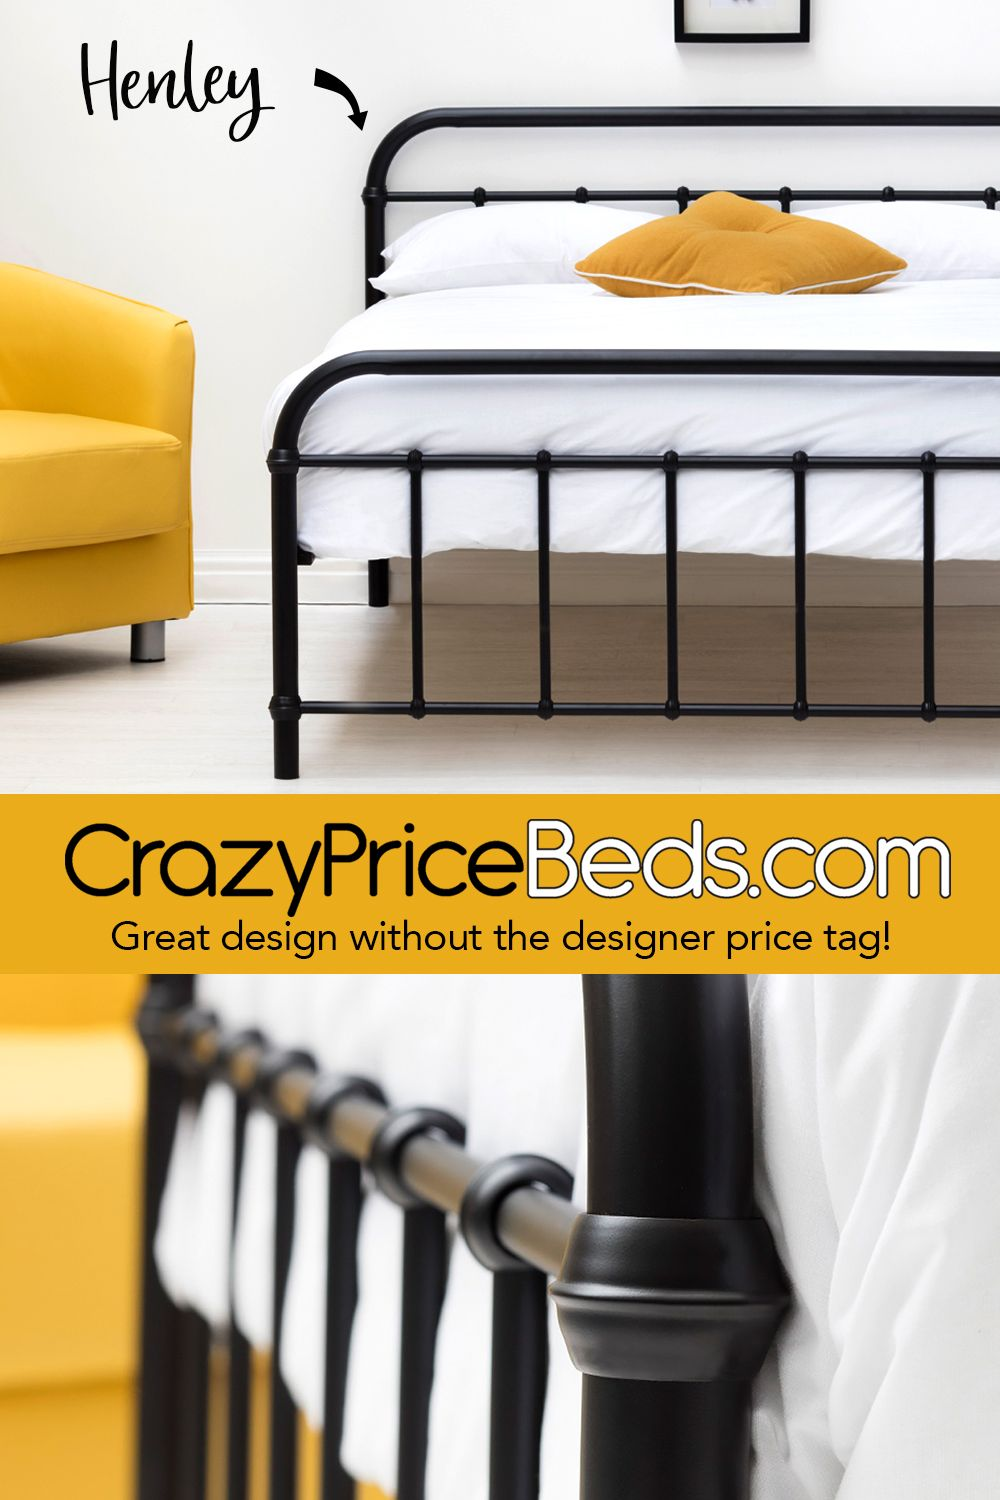 Pin on Beds, Mattresses, Sofa Beds